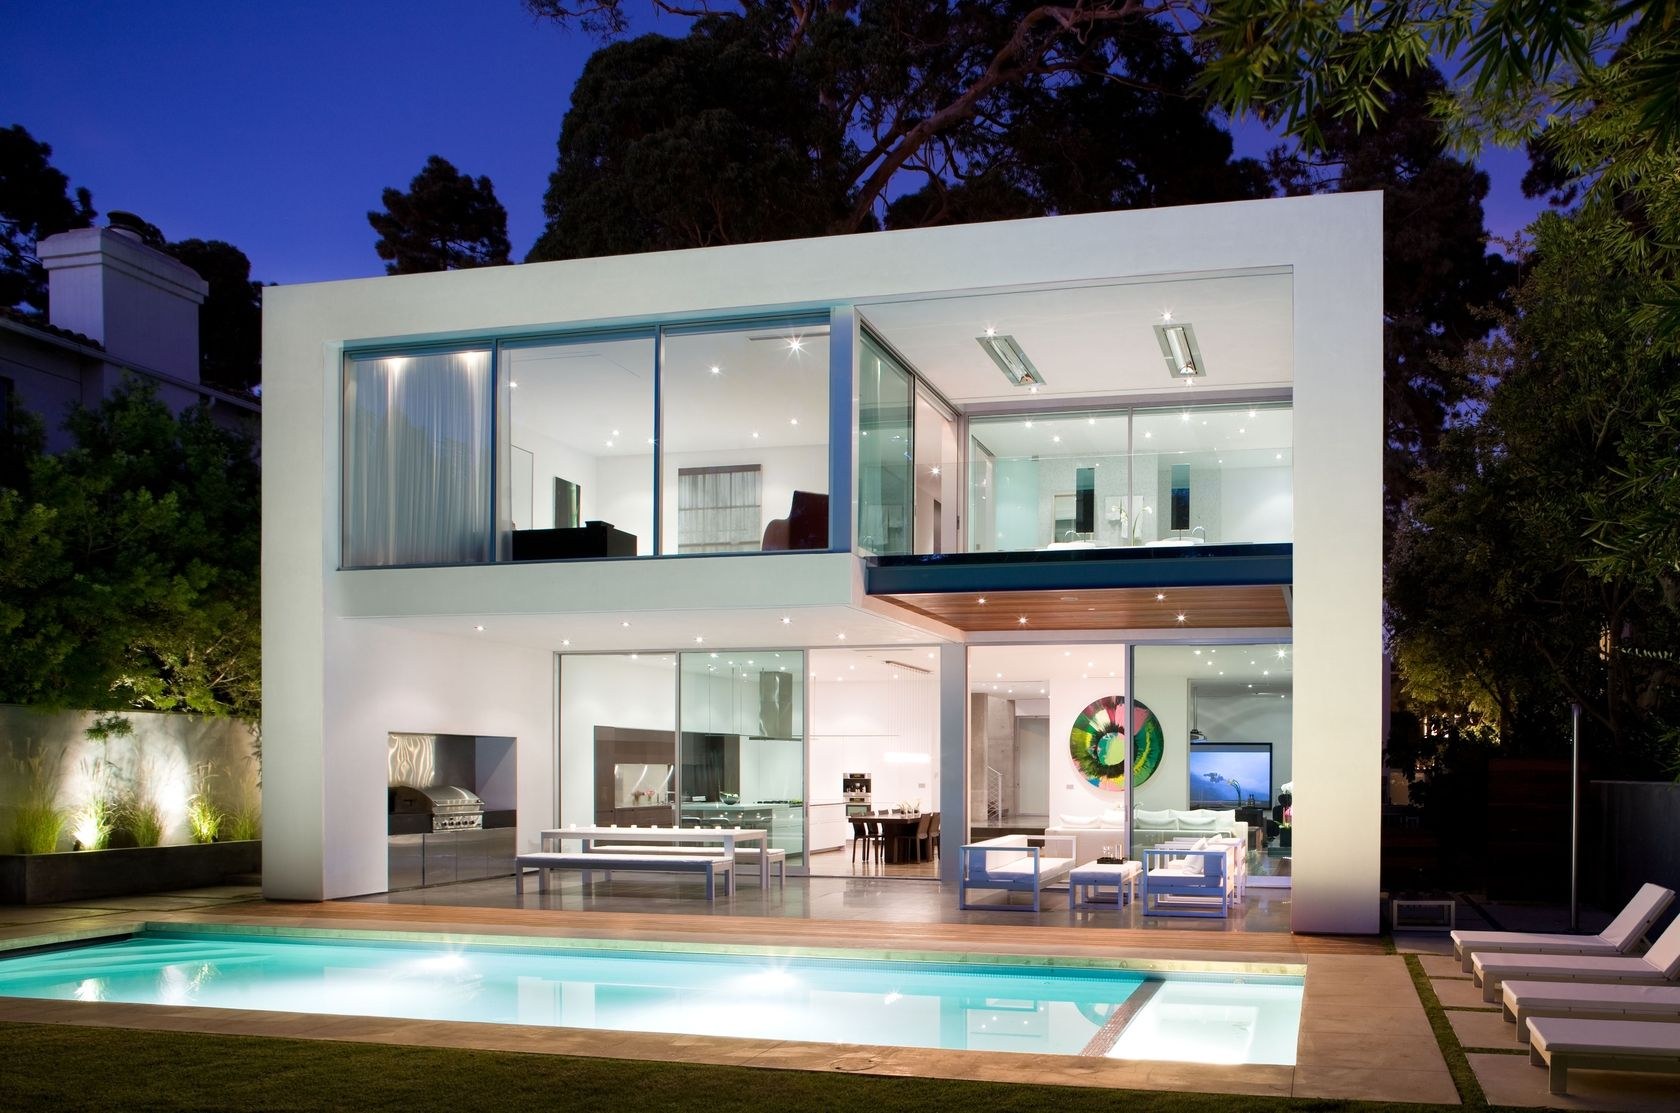 Merveilleux Street Residence Is A Minimalist Modern Home With Outdoor Room, Art Display  Walls, Recording Studio And Home Theatre Utilizing Green Building  Technologies.